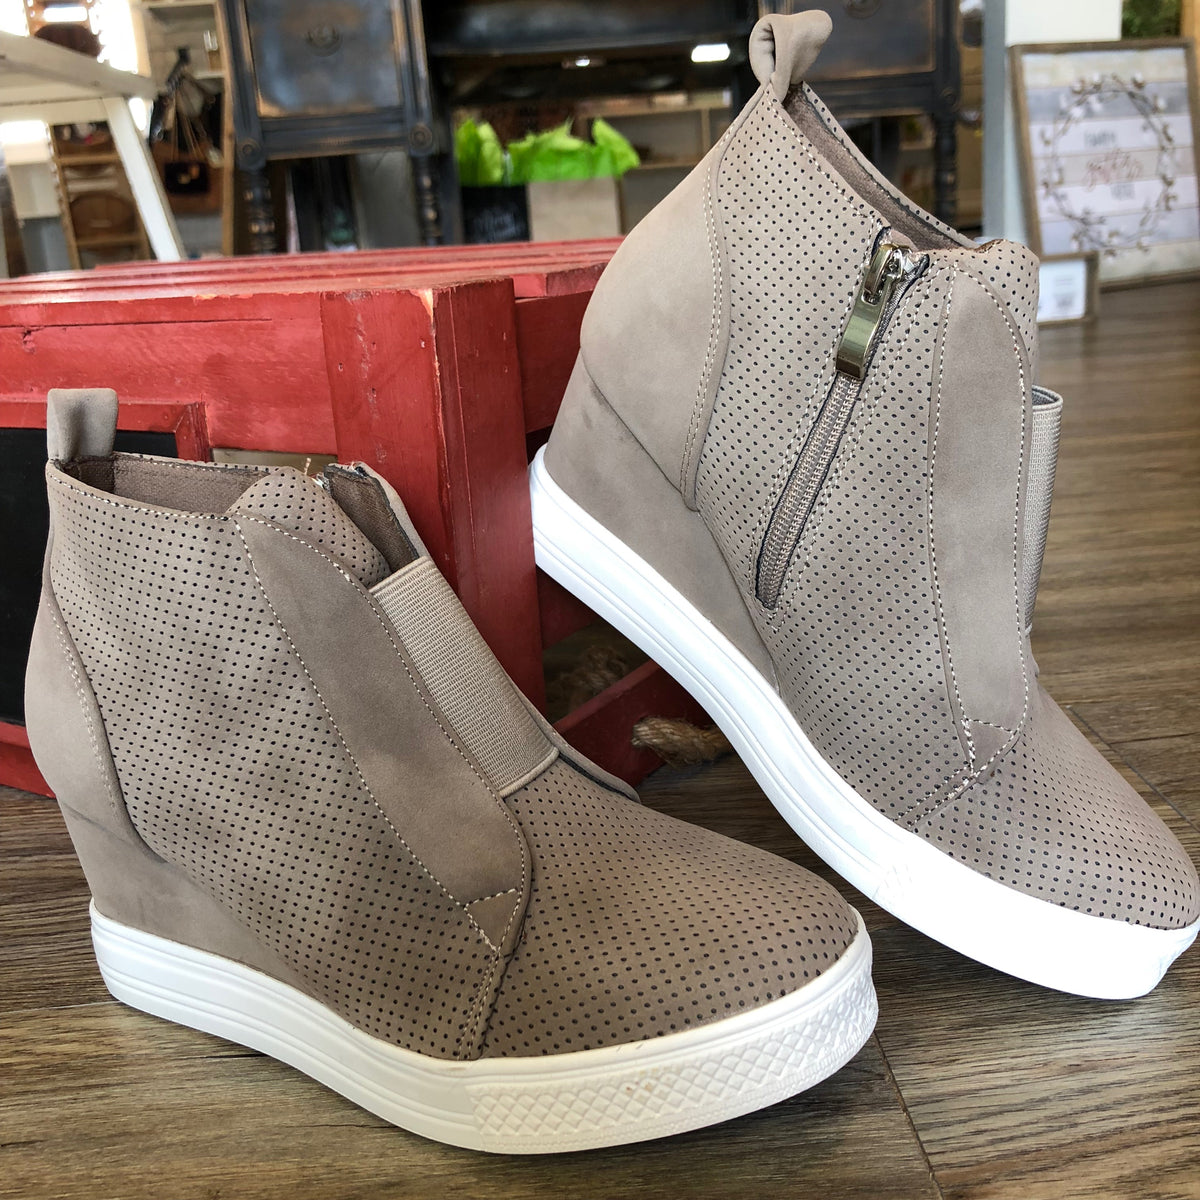 6fb82cff78 Zoey Taupe Wedge Sneakers – The Pricklee Pear Boutique